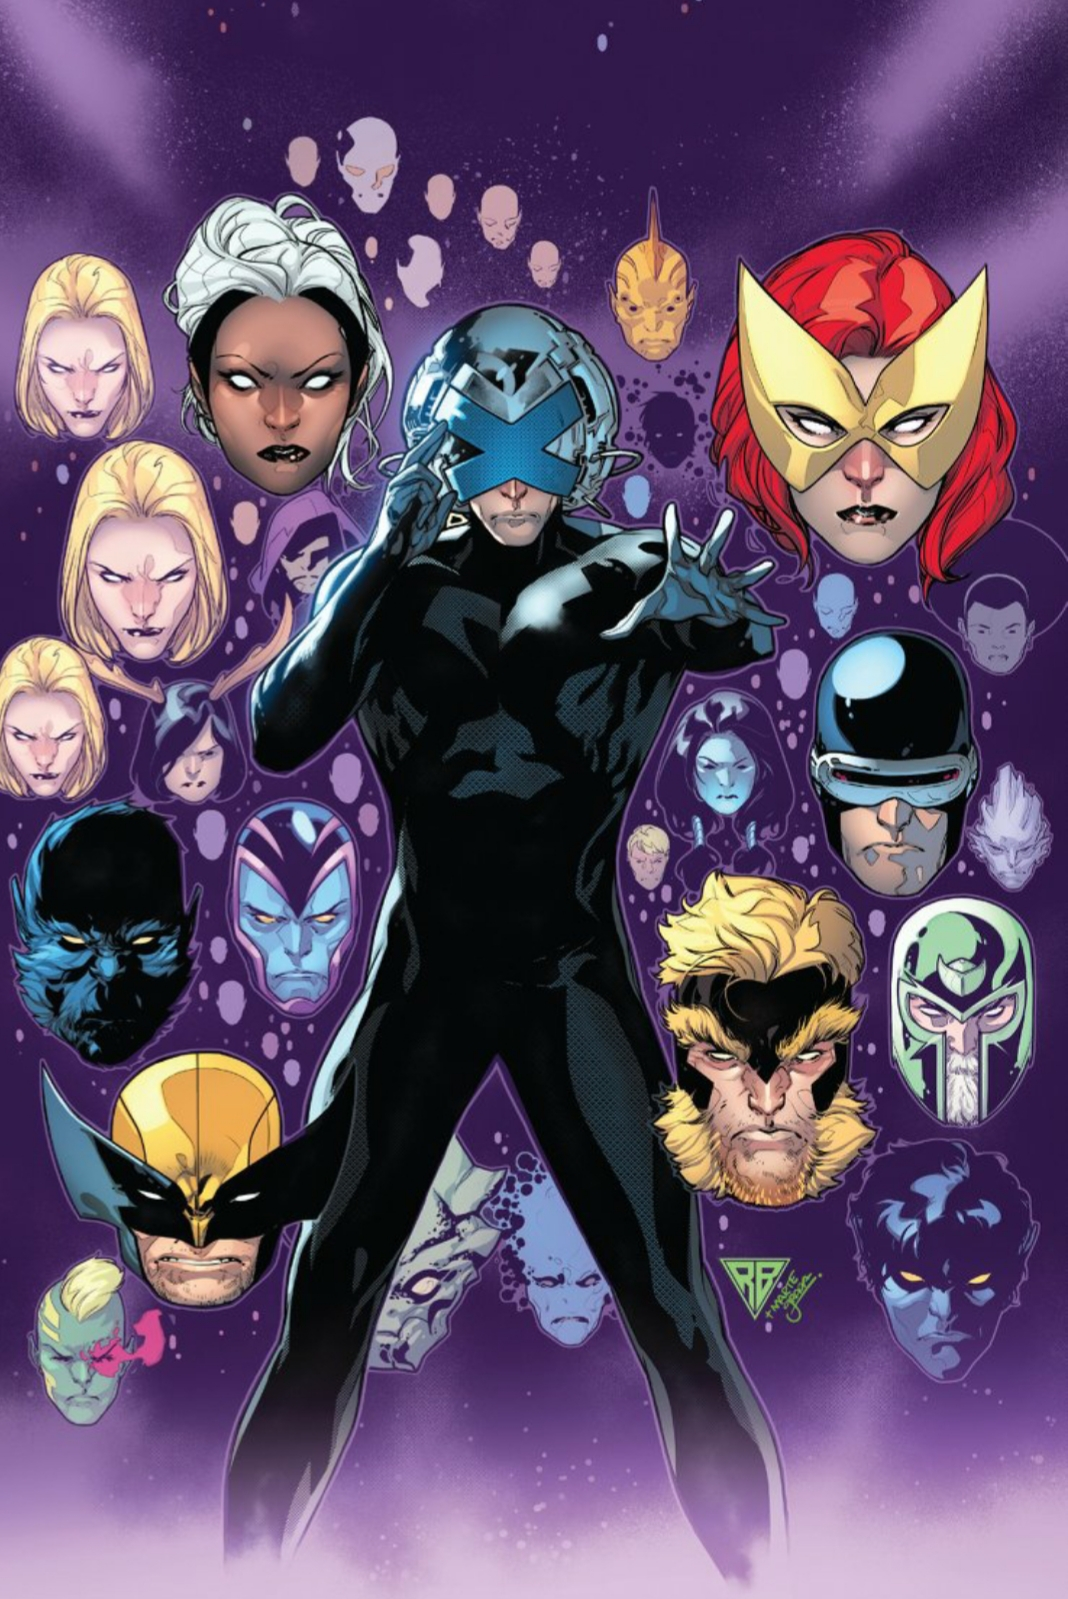 What are the best X Men comics to read as a starter?